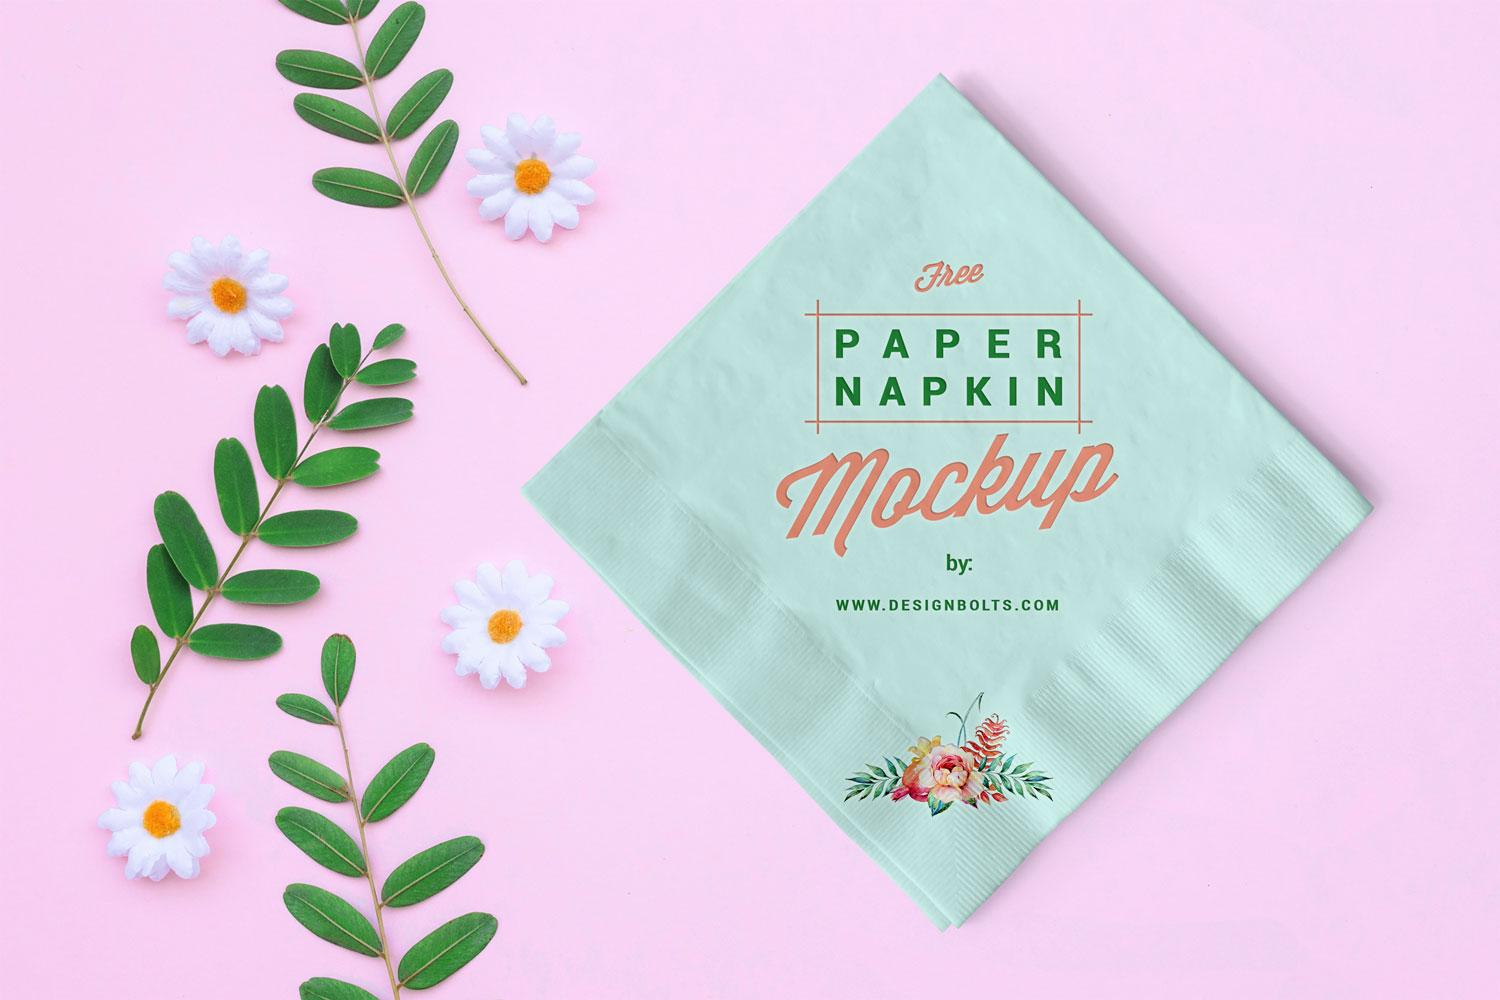 Free Table Paper Napkin Mockup